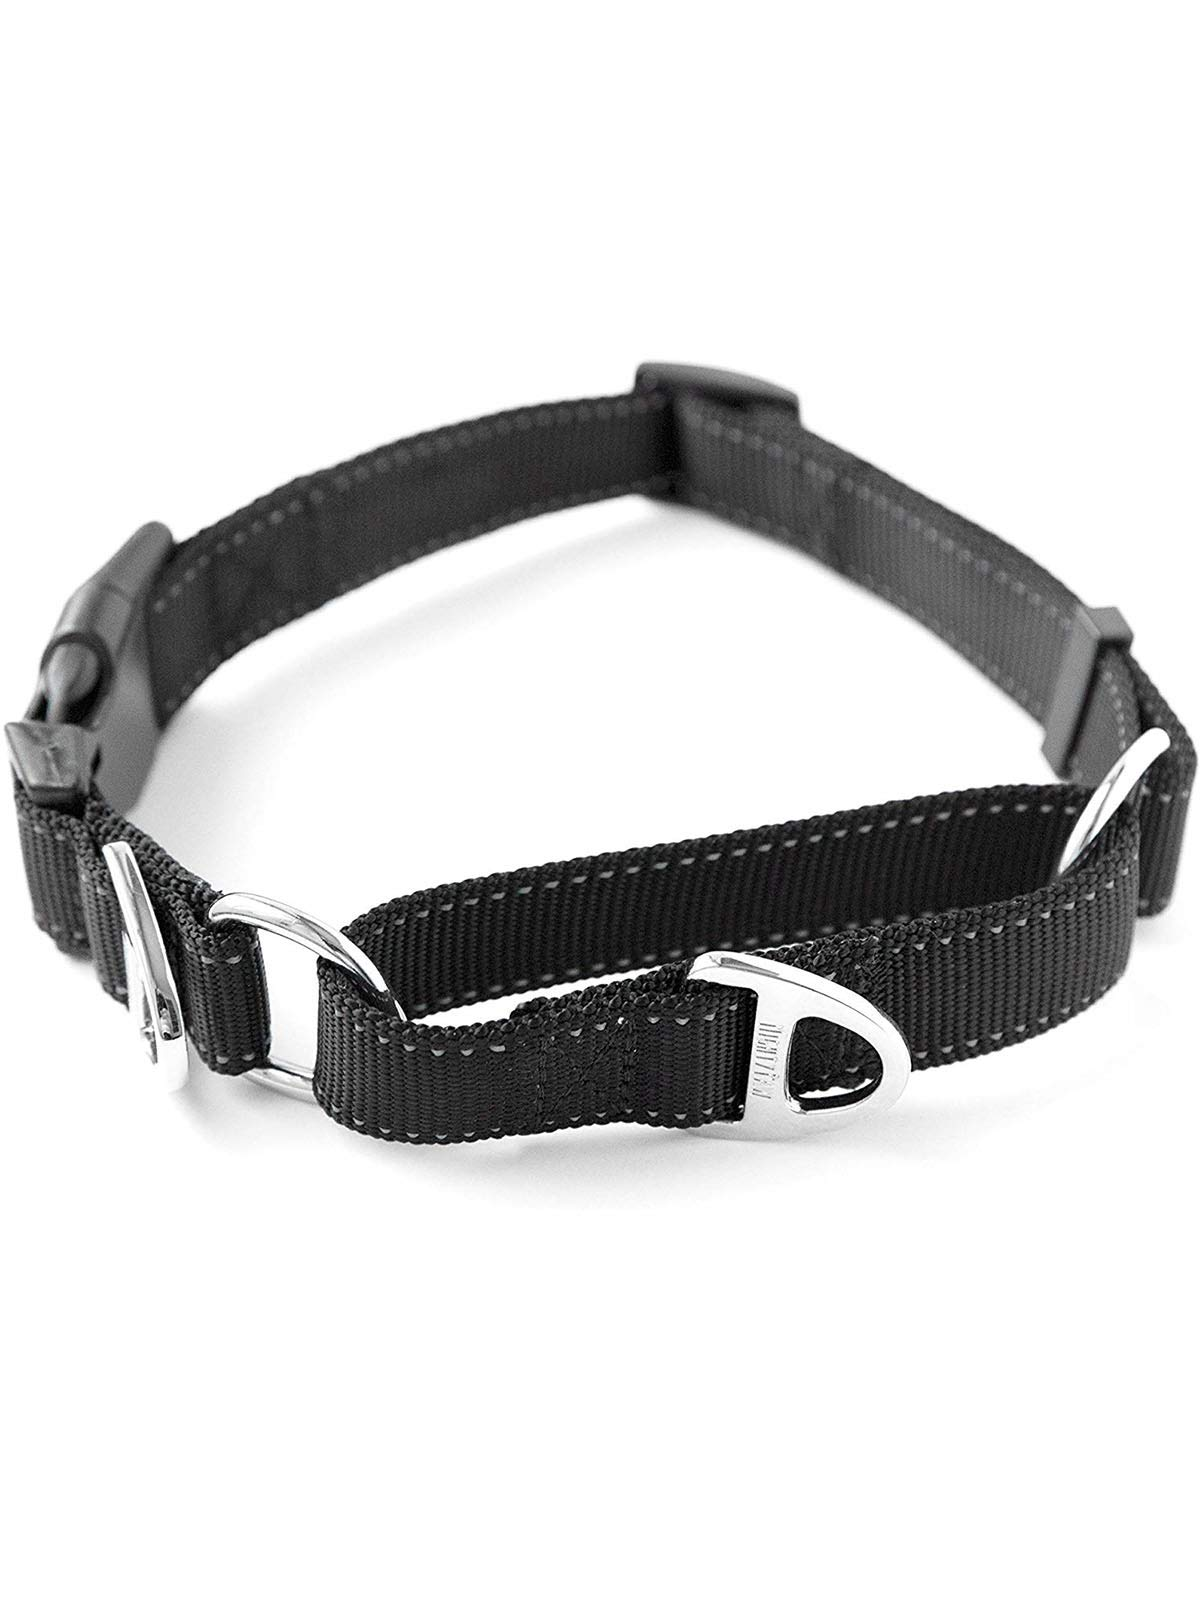 Mighty Paw Martingale Nylon Training Collar. Our Trainer Approved Limited Slip Collar. Modified Cinch Collar for Controlled Force for Optimal Training. Reflective Stitching to Keep Your Dog Safe! by Mighty Paw